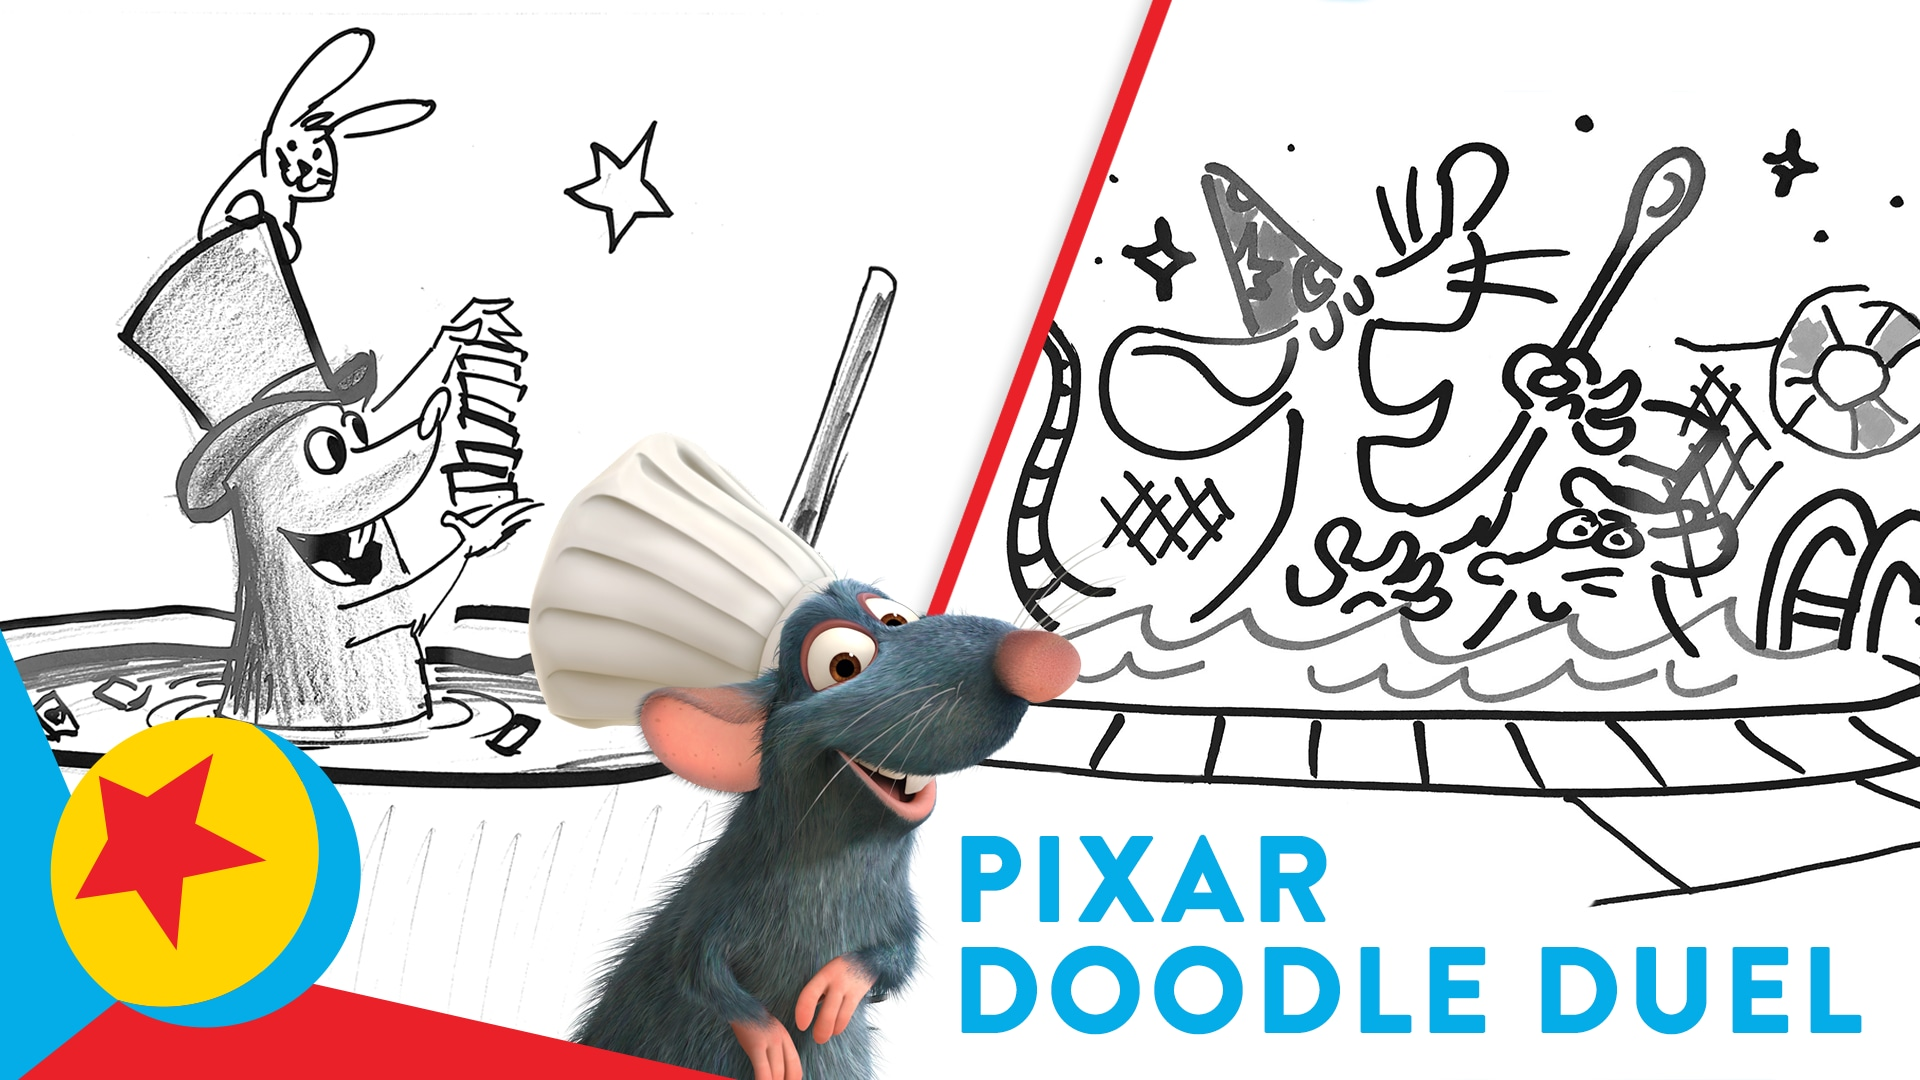 Pixar Artists Face Off to Draw Remy in the Pool Doing Magic | Pixar Doodle Duel